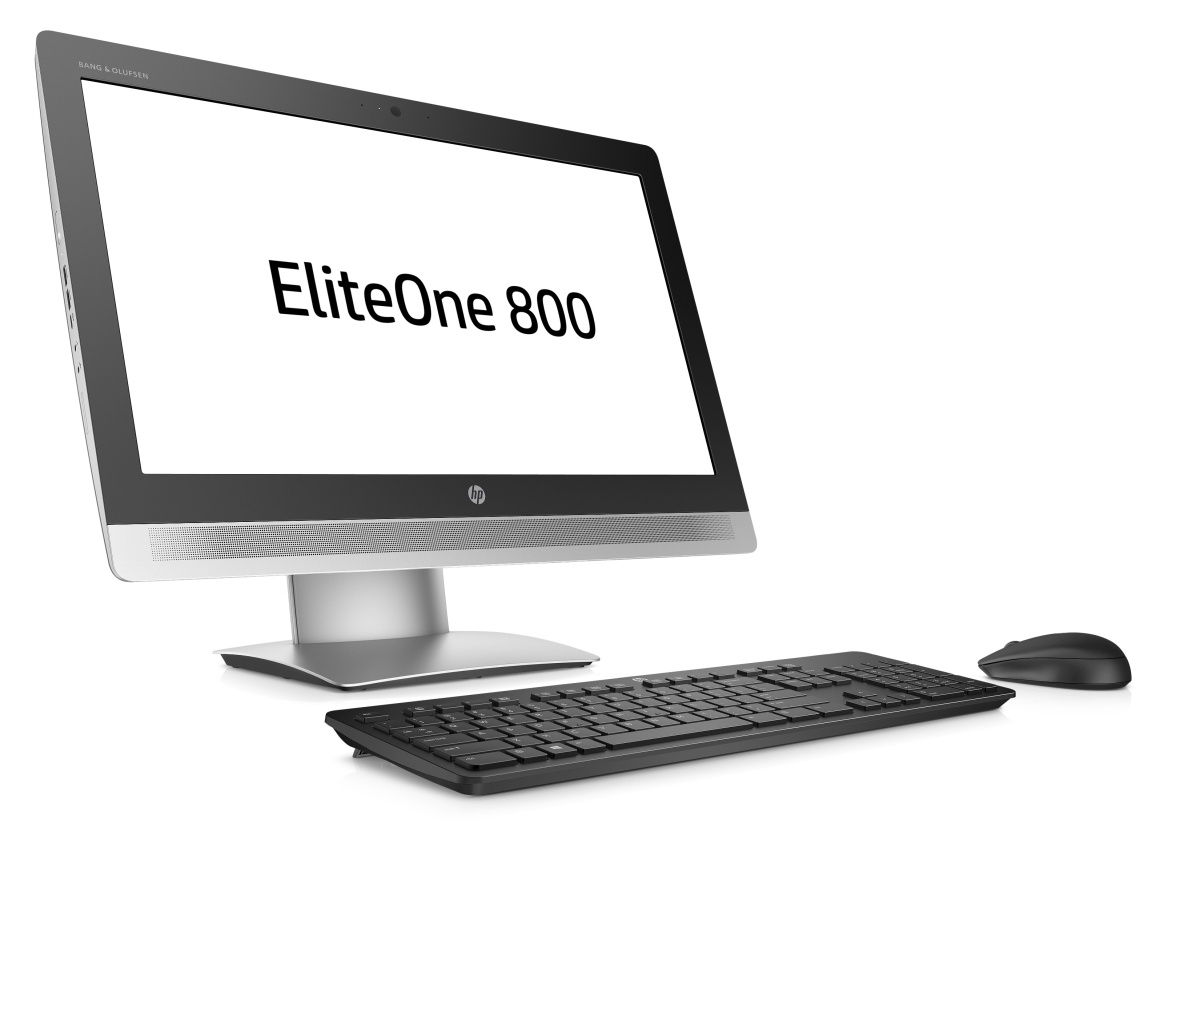 HP EliteOne 800G2 AiO 23 NT / i5-6500 / 4 GB / 500 GB / Intel HD / Win 10 Pro + Win 7 Pro